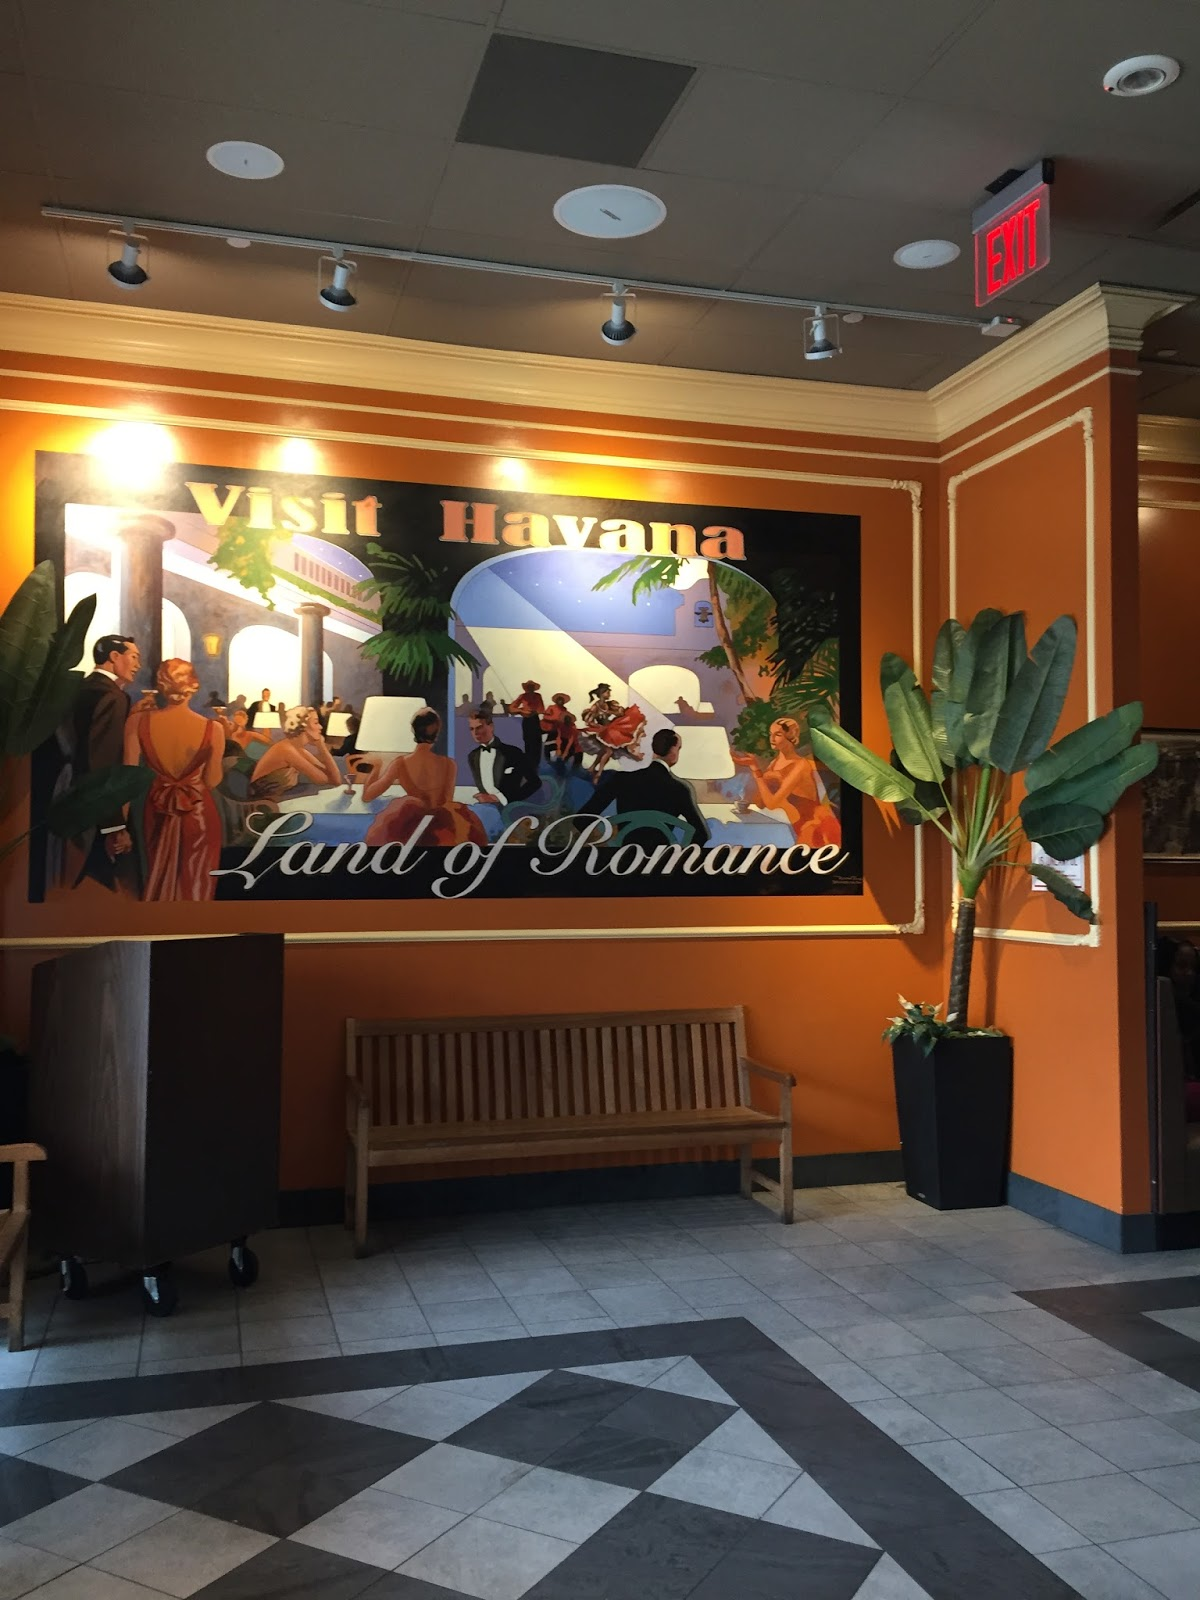 Vambina 39 s eats travels dreams vambinas eats havana central garden city Cuban restaurant garden city ny